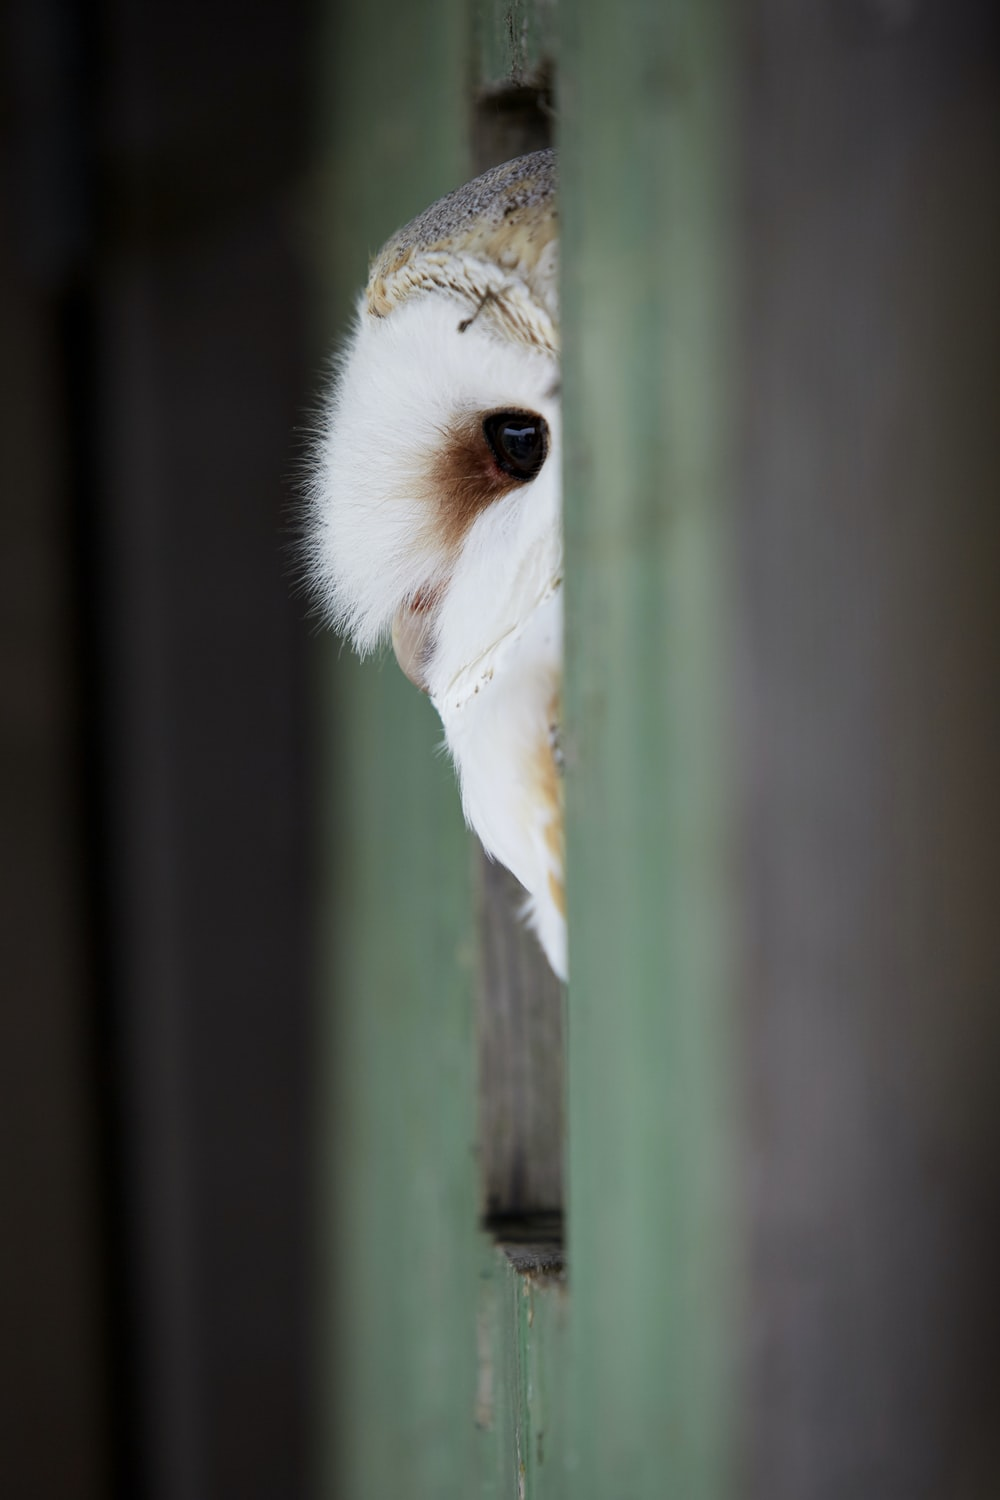 An owl peeking at the camera while sitting in a wall opening.